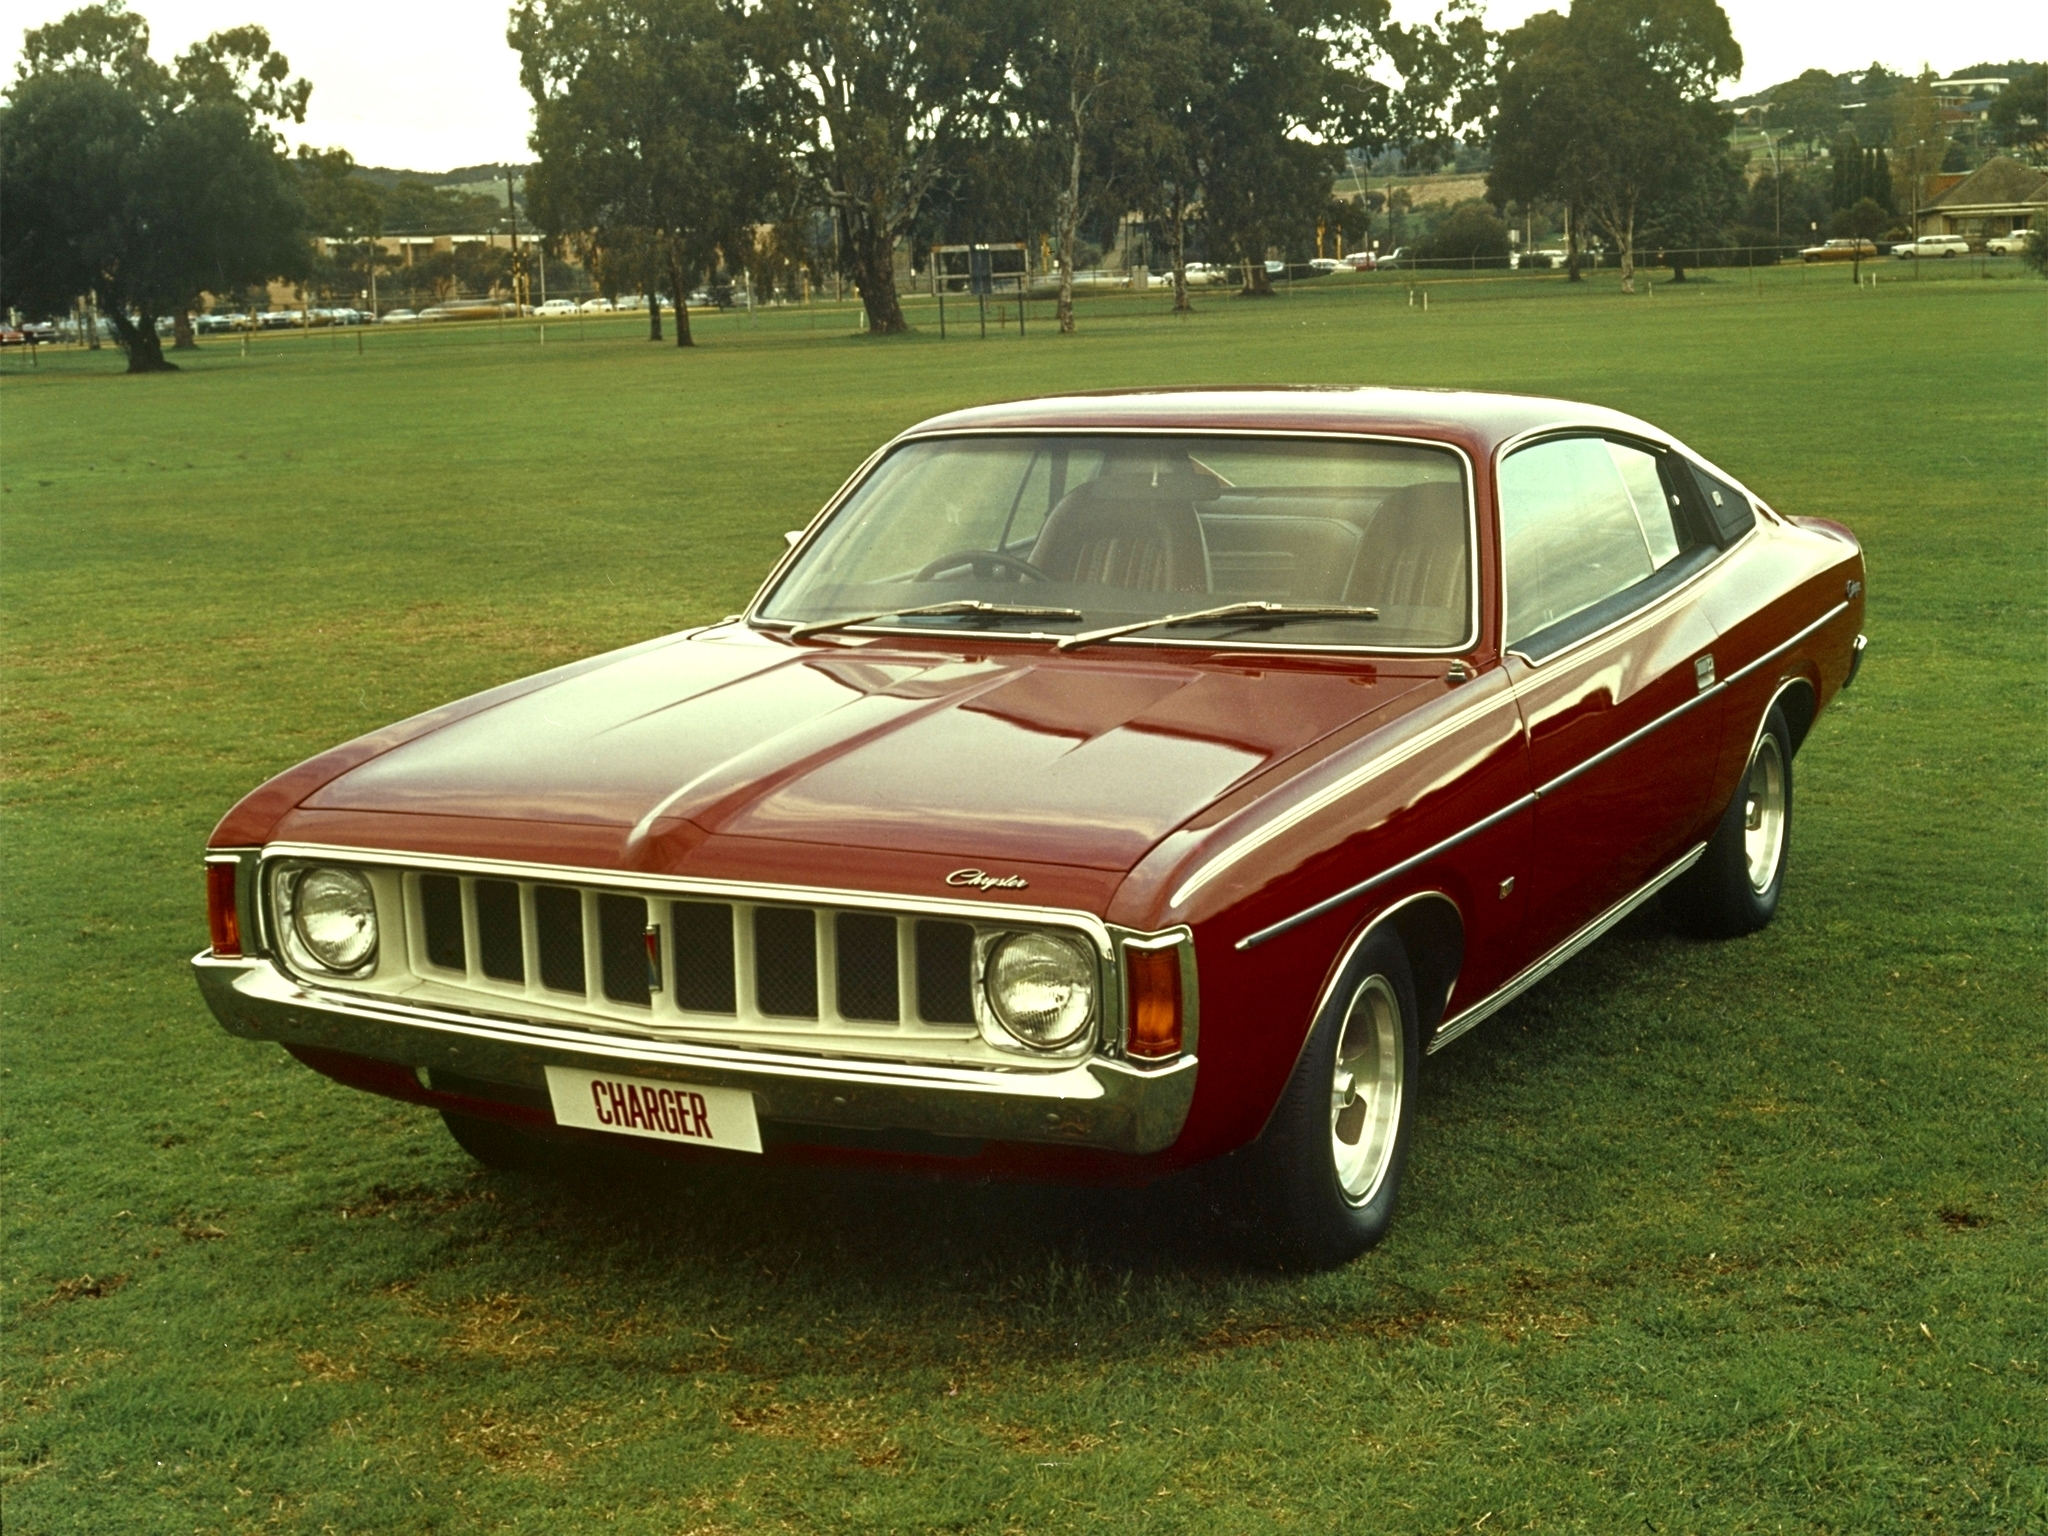 4 Chrysler Valiant Charger Hd Wallpapers Backgrounds